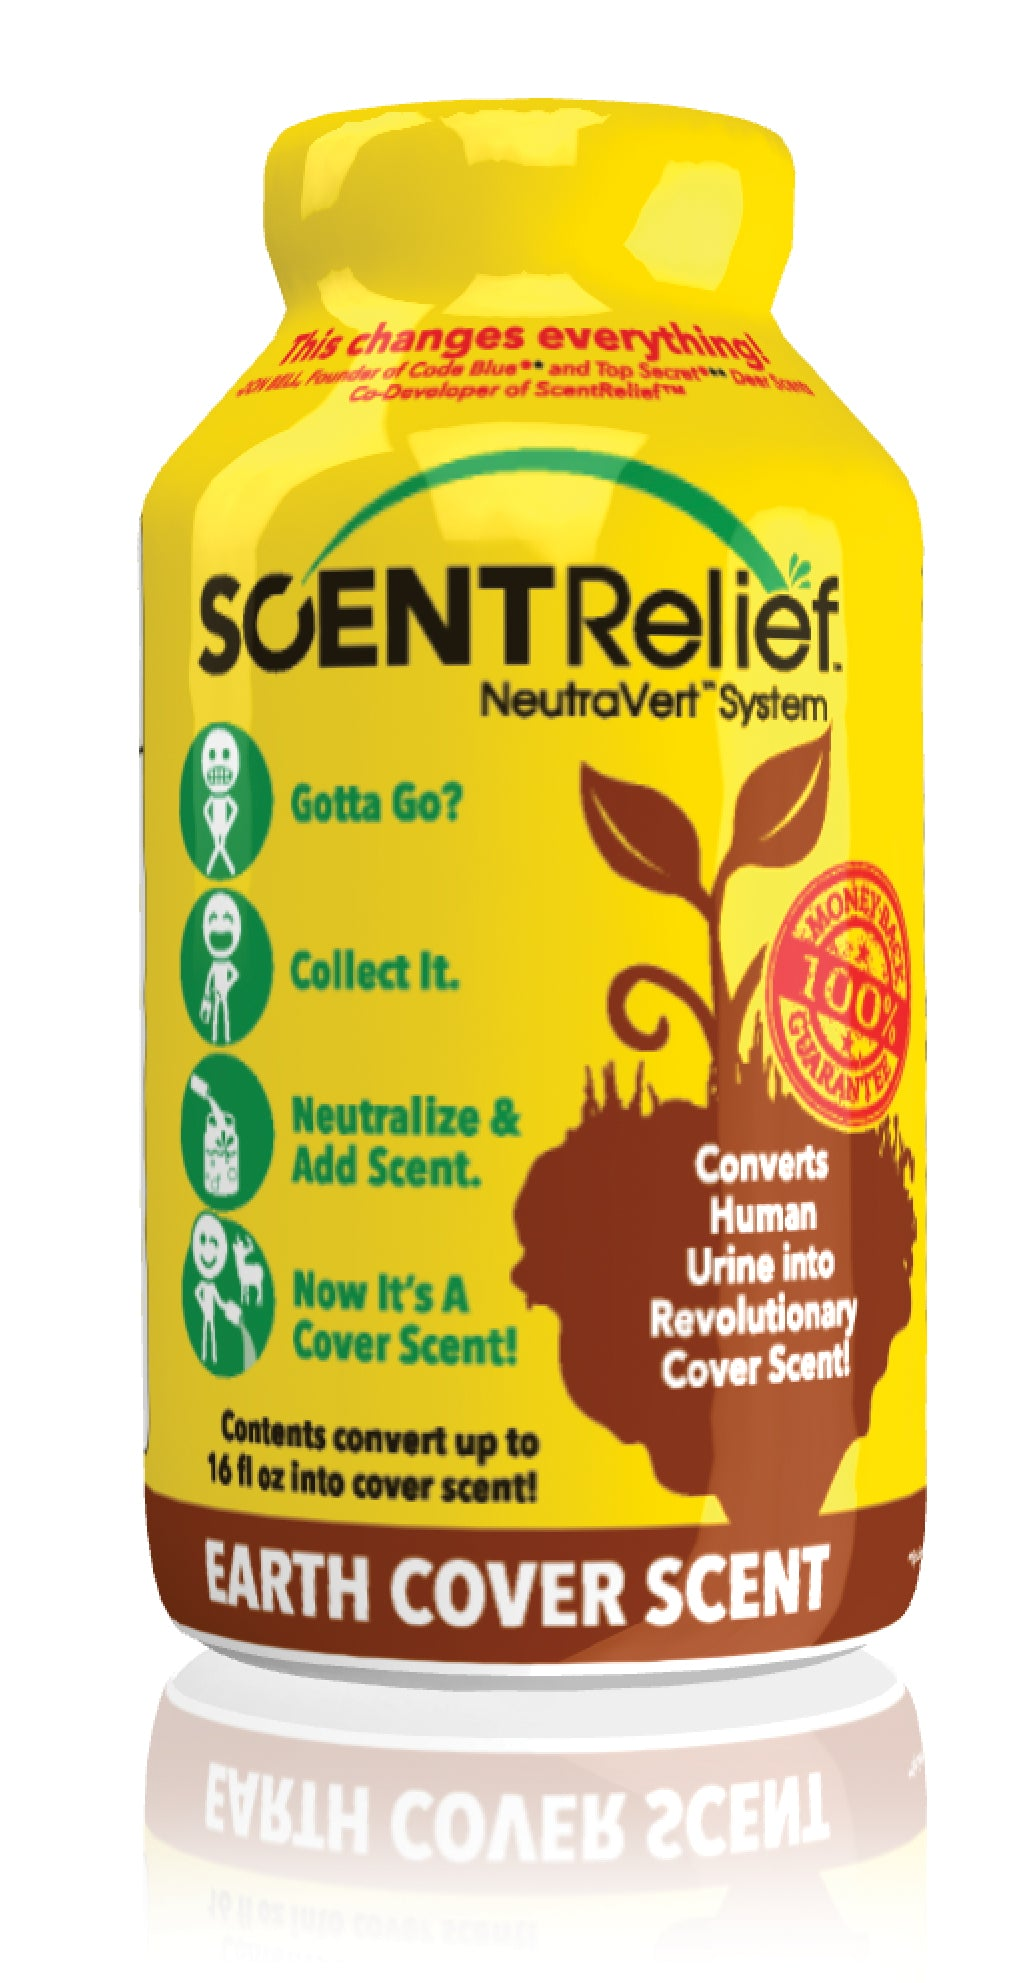 Scent Relief Earth Cover Scent